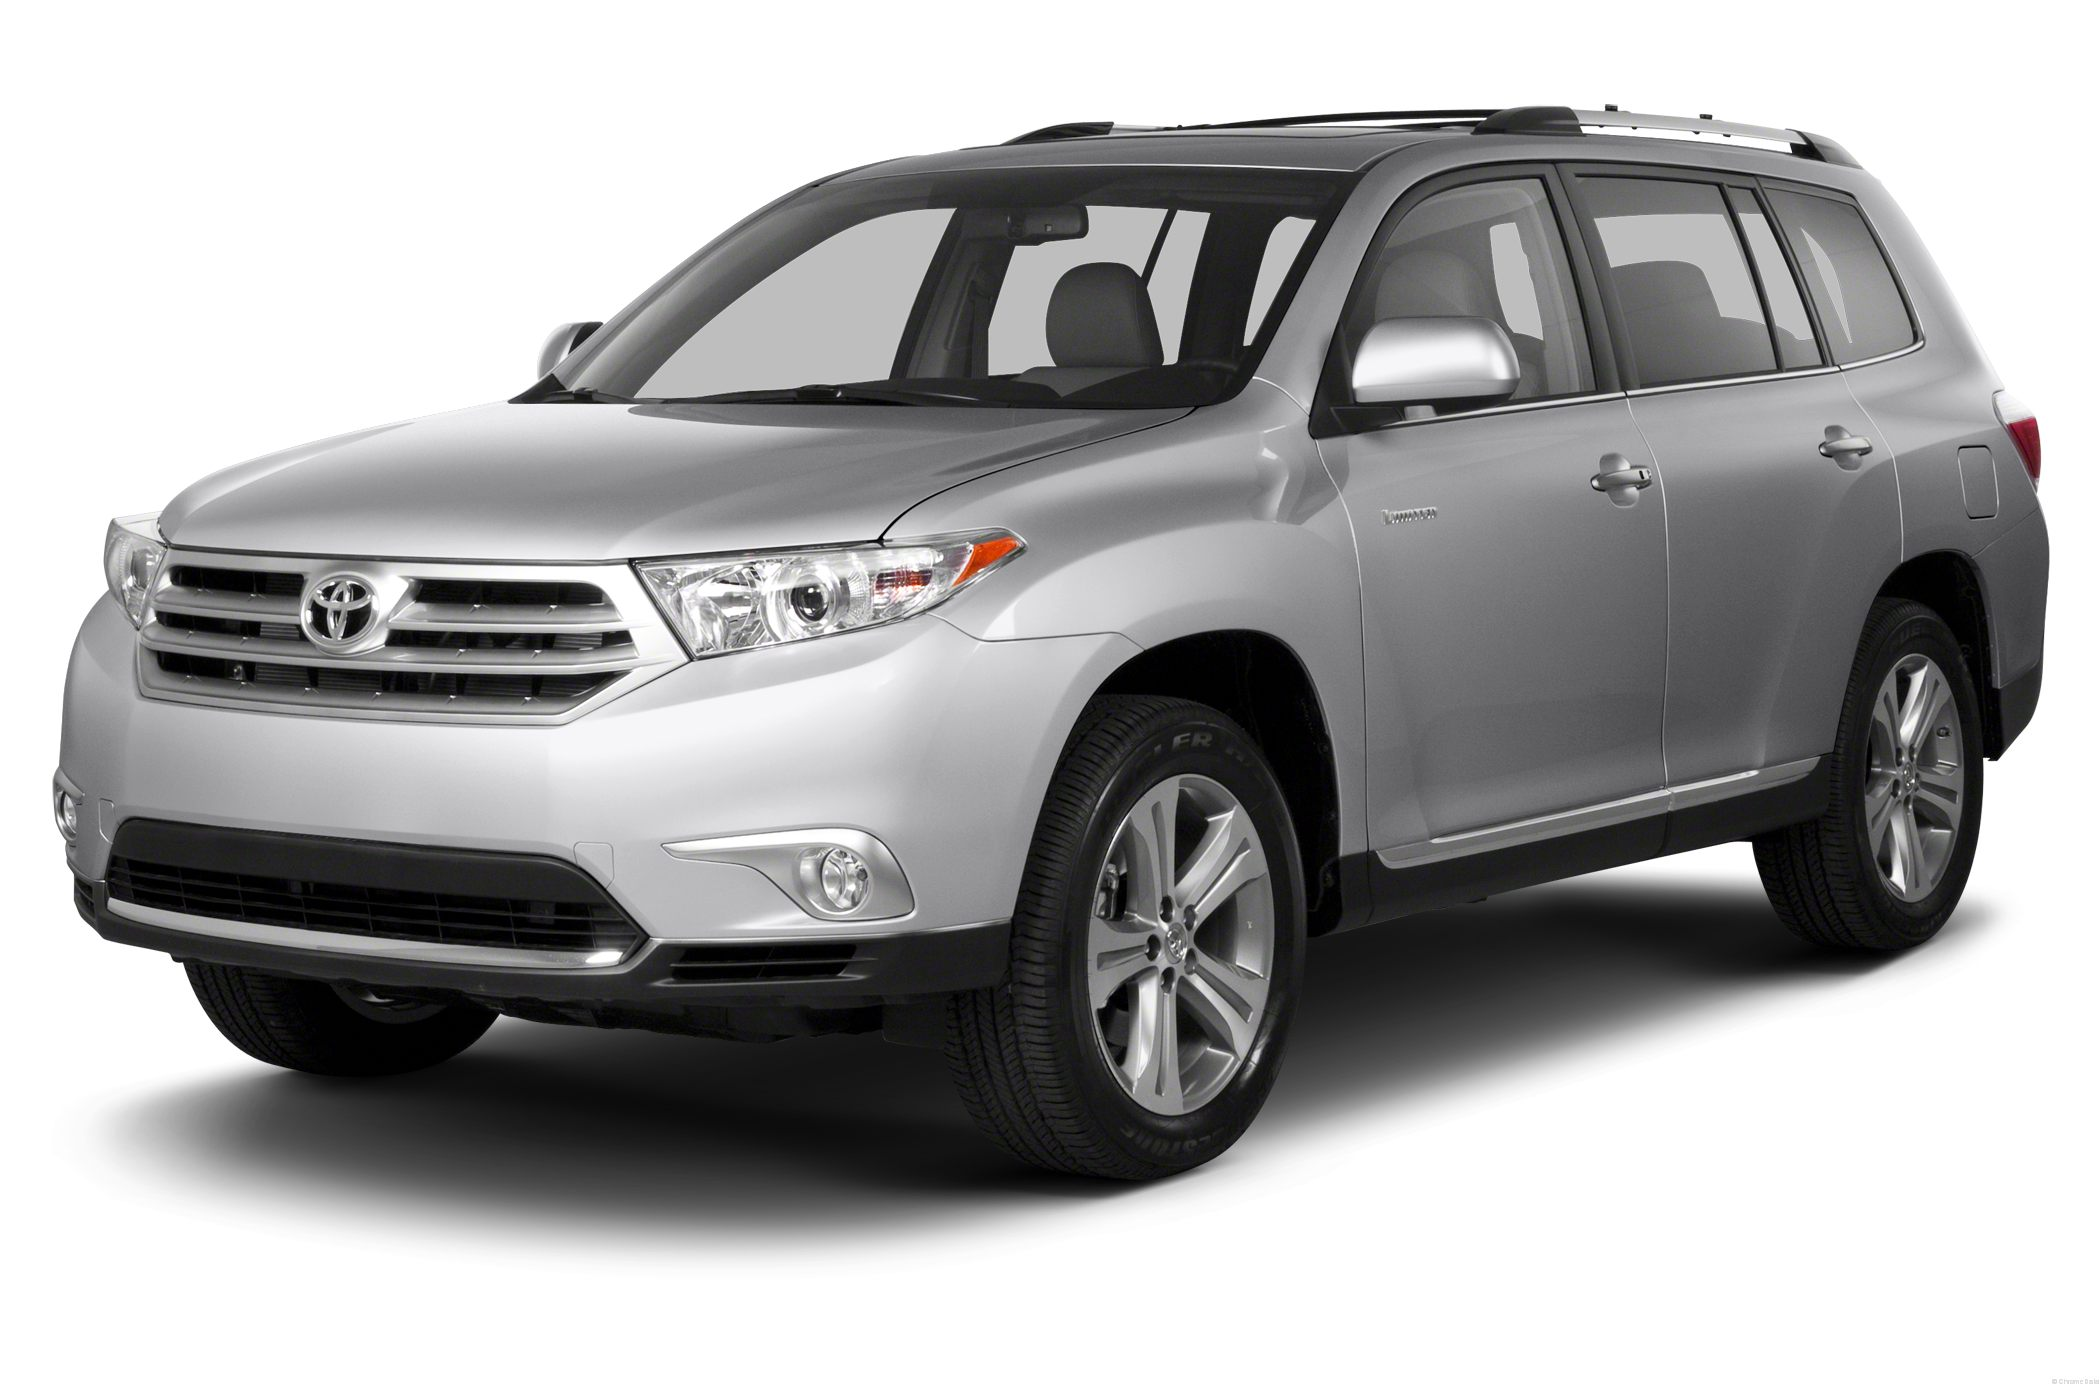 Video Description: Iguida.com reviews the 2013 Toyota Highlander. For